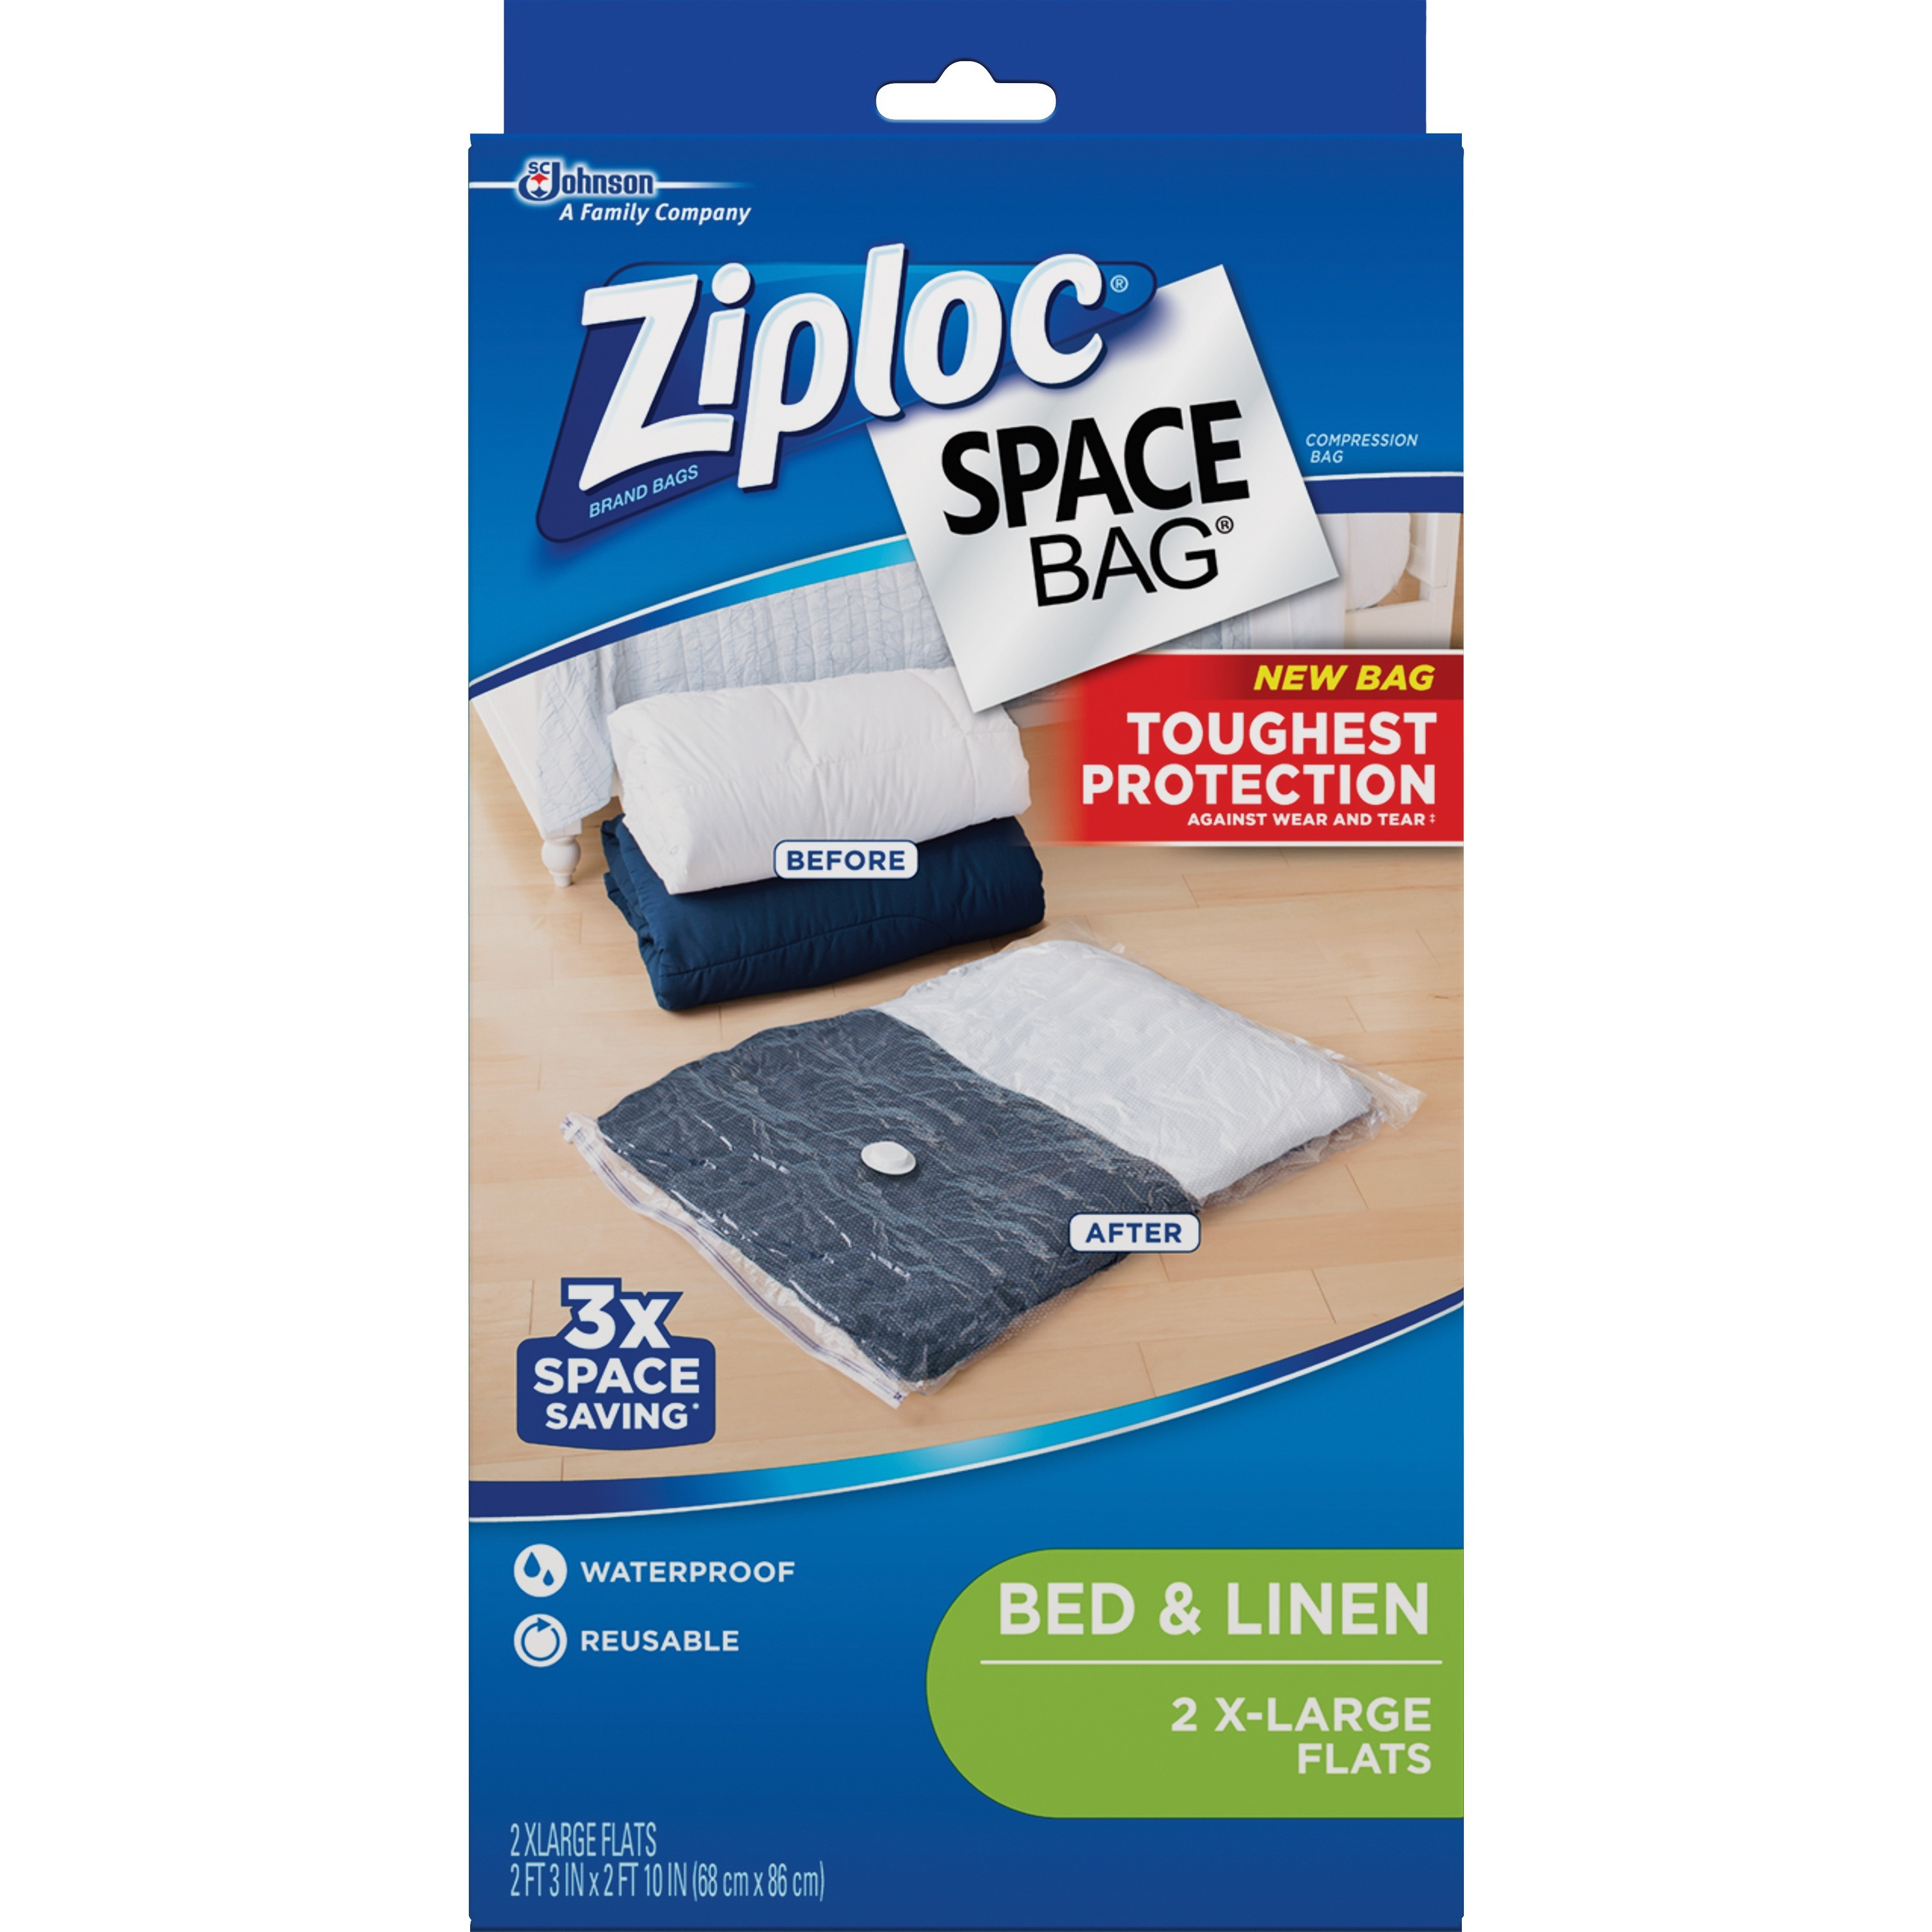 Ziploc Extra Large Space Bag Vacuum Seal Bags, 2-Piece